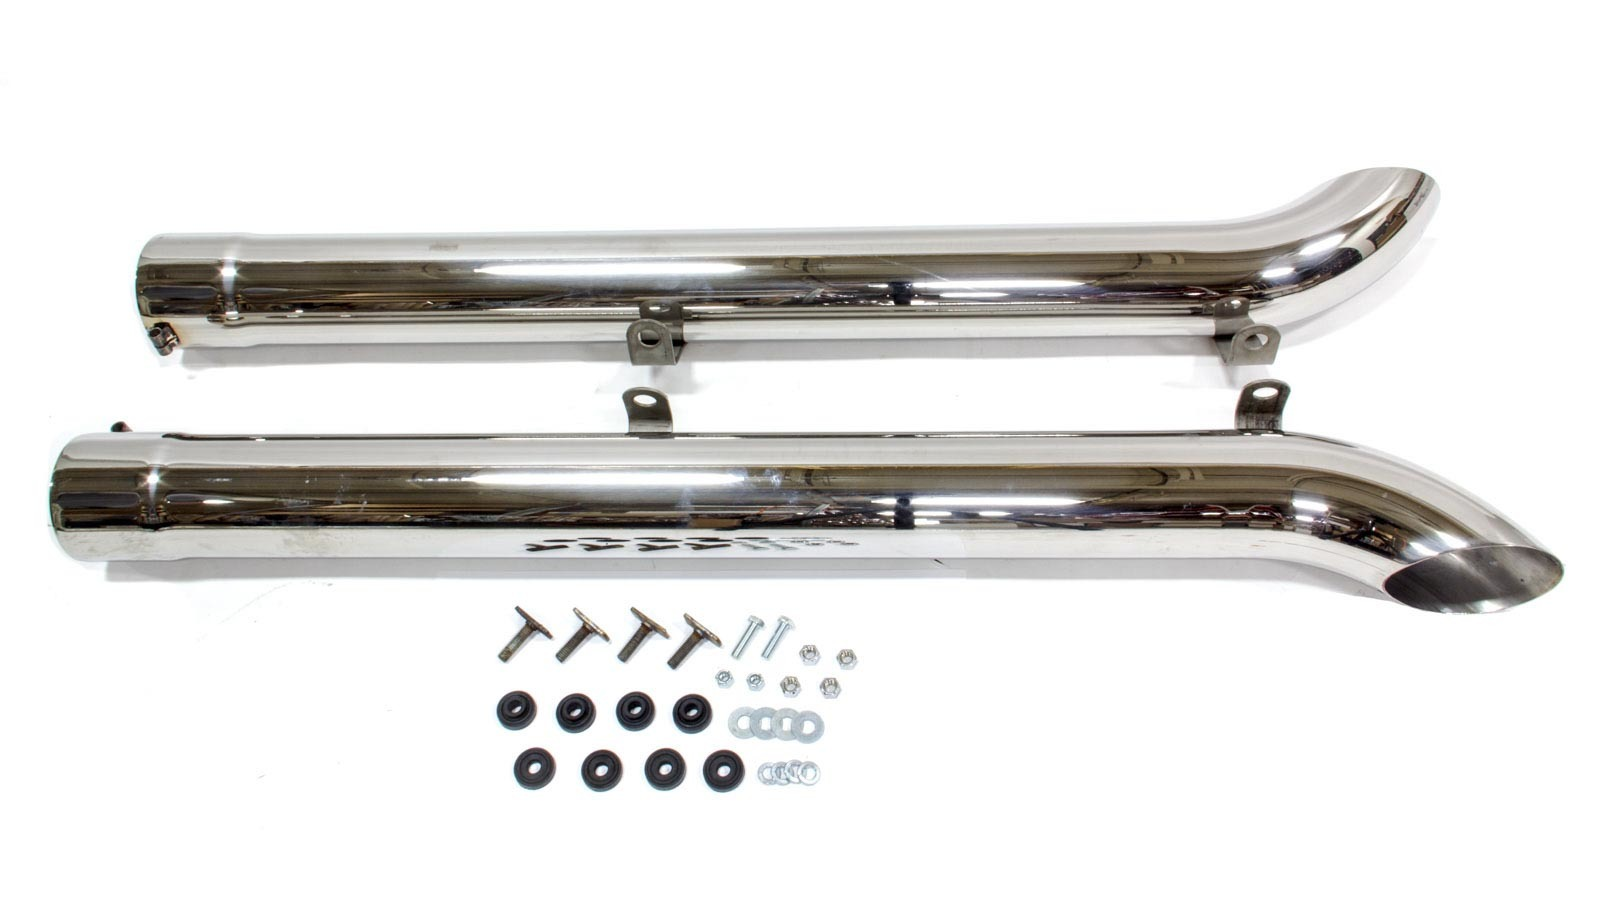 Hooker 50735-3 Exhaust Side Pipes, Super Competition, 4 in Diameter, 18 Gauge, Stainless, Polished, SideMount Headers, Pair